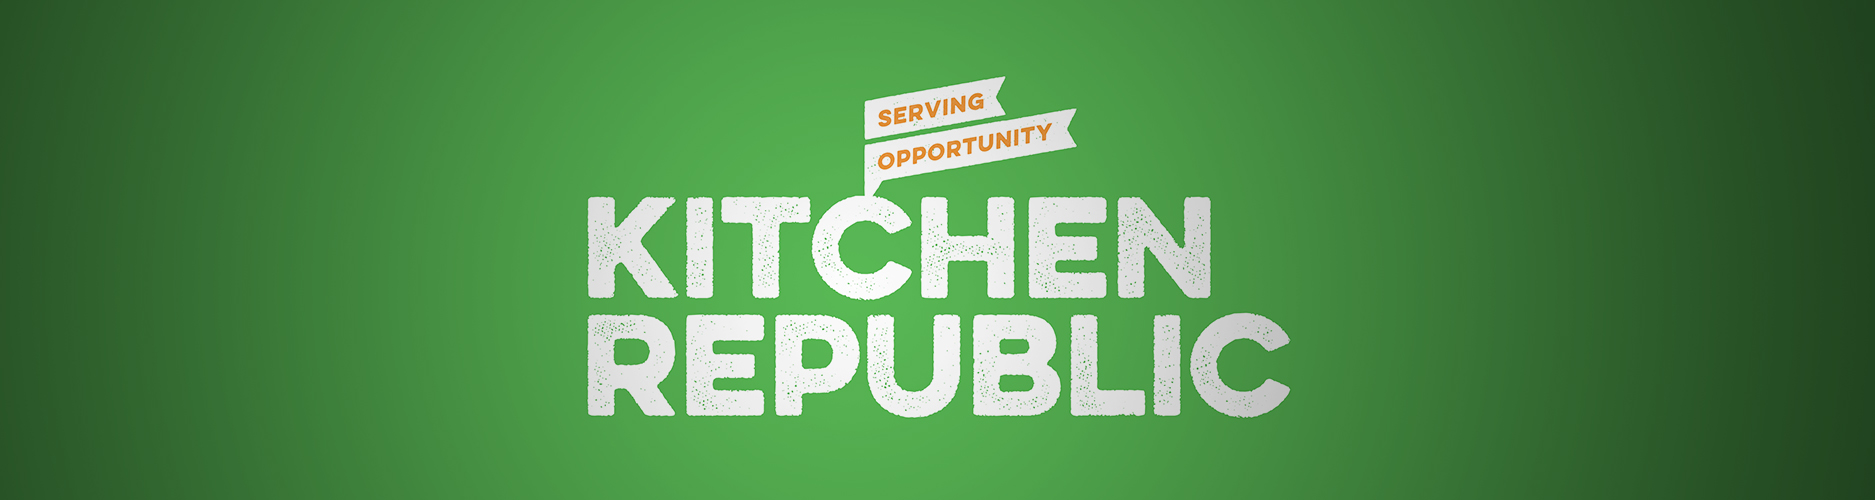 We Canteen en Kitchen Republic intensiveren samenwerking